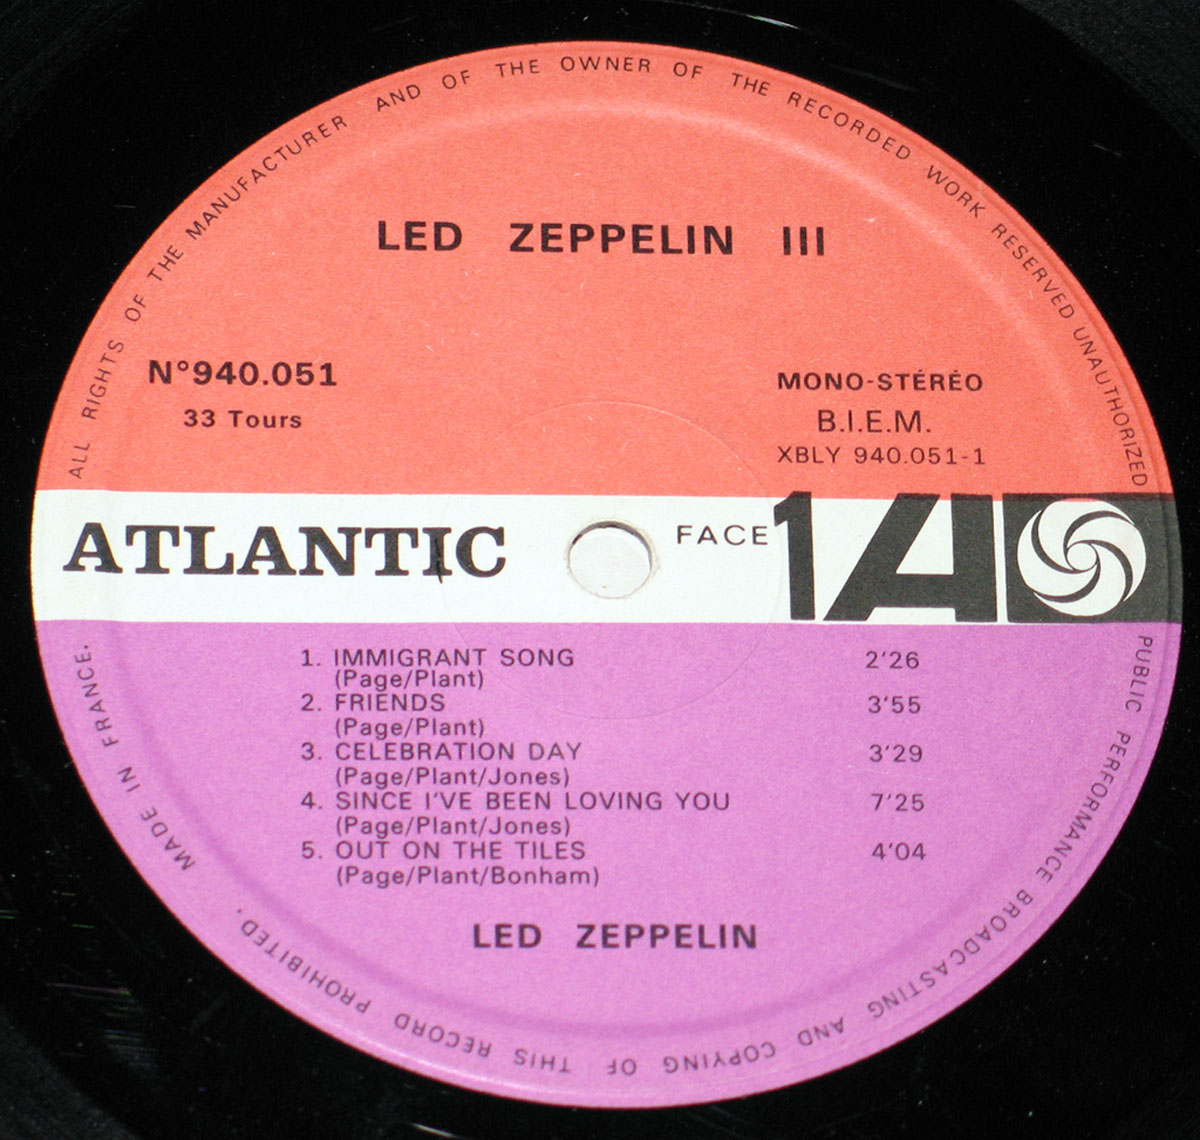 High Resolution Photo #5 LED ZEPPELIN III France Spinning Wheel